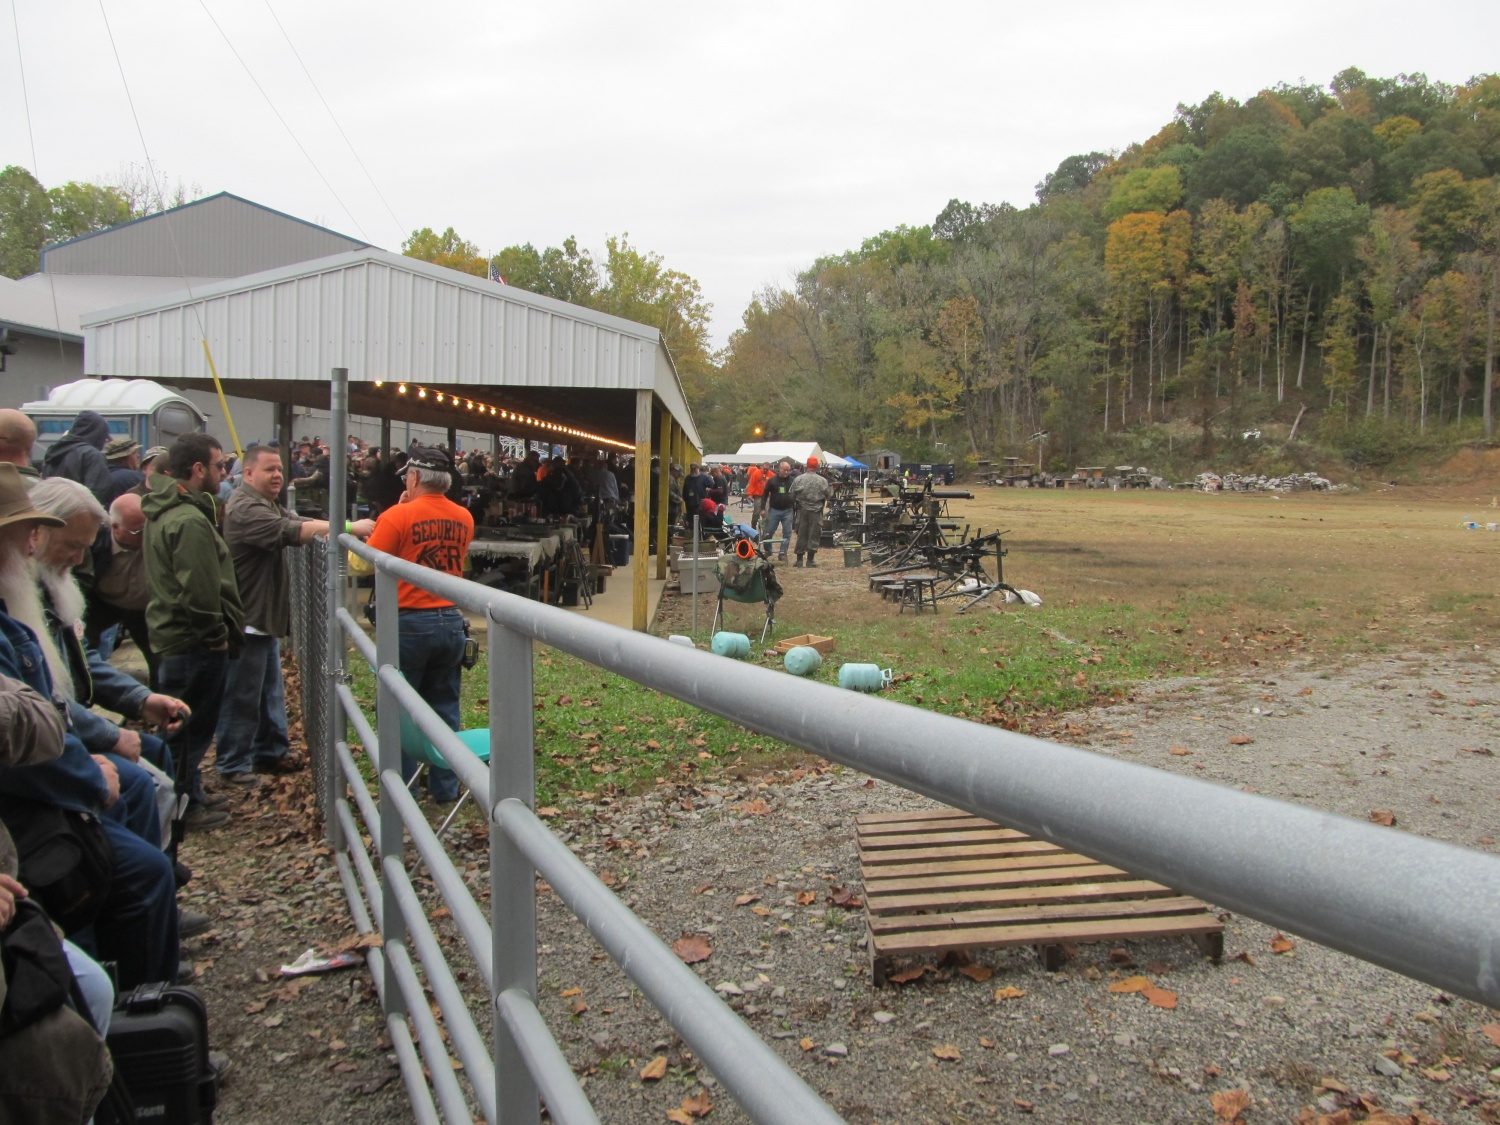 A view looking down the Main Line from the right side. Notice the gate  separating bystanders from the shooters. The men in bright orange shirts are Knob Creek employees.